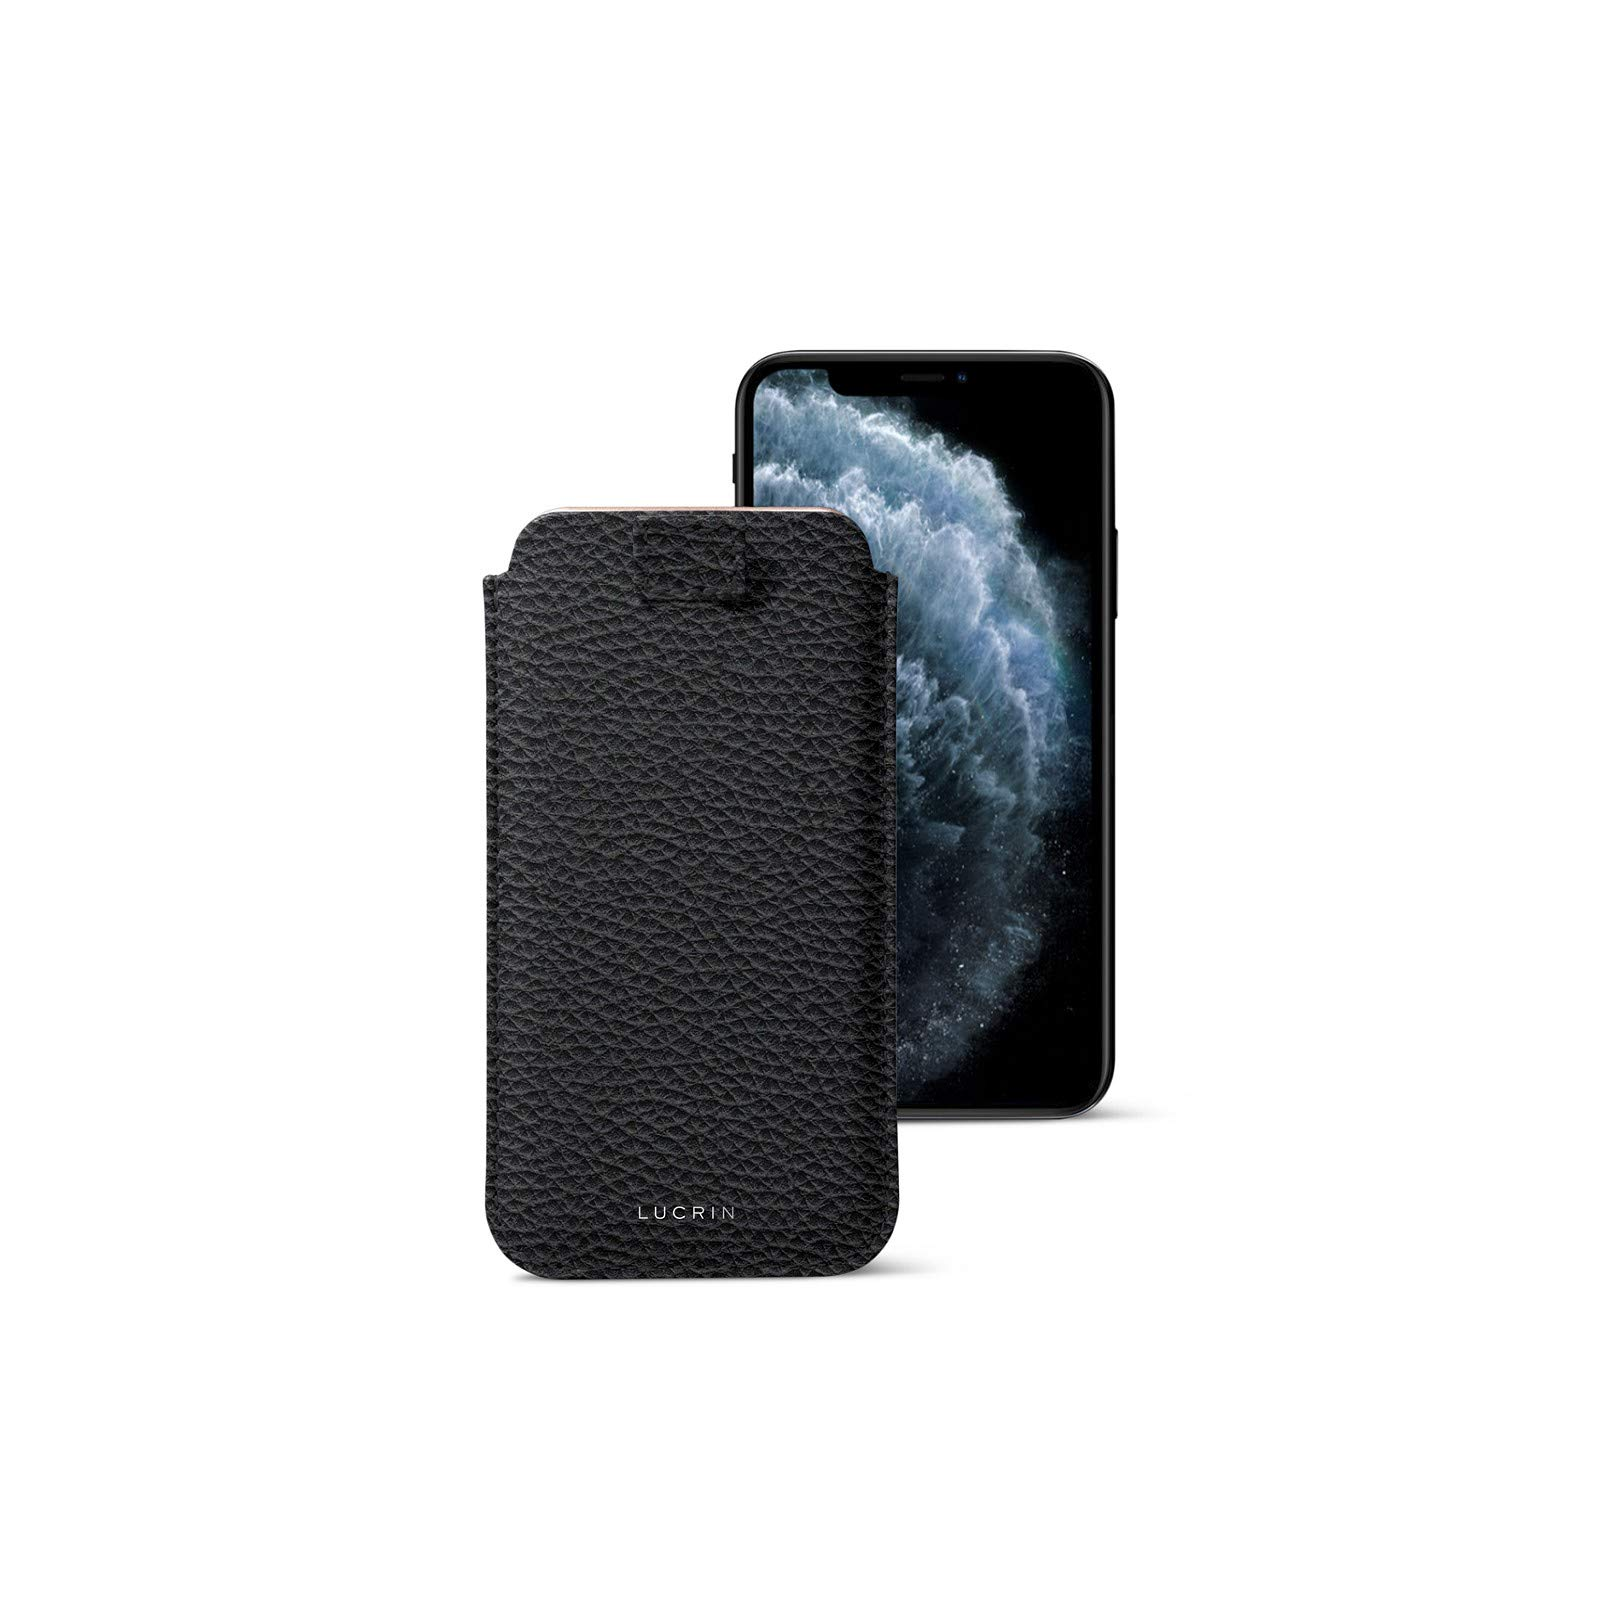 Lucrin - Pull Tab Slim Sleeve Case Compatible with iPhone 11 Pro/iPhone Xs/iPhone X and Wireless Charging - Black - Granulated Leather